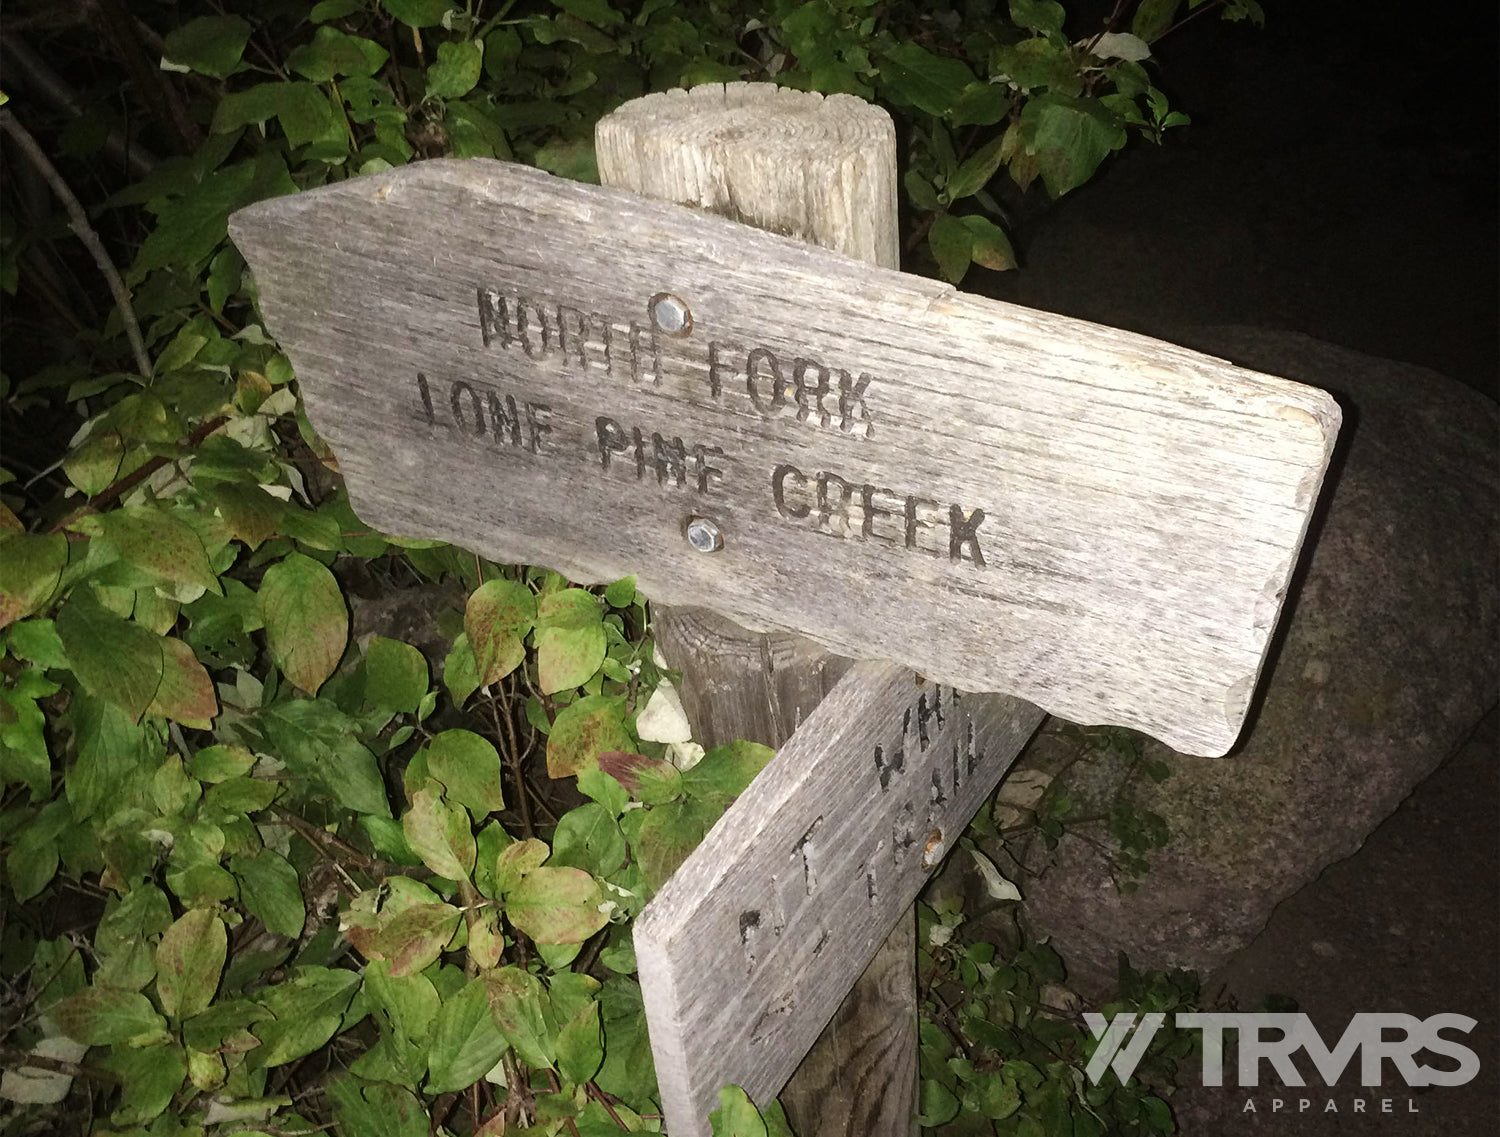 North Fork Trail Junction Sign on Mount Whitney Trail | TRVRS APPARREL